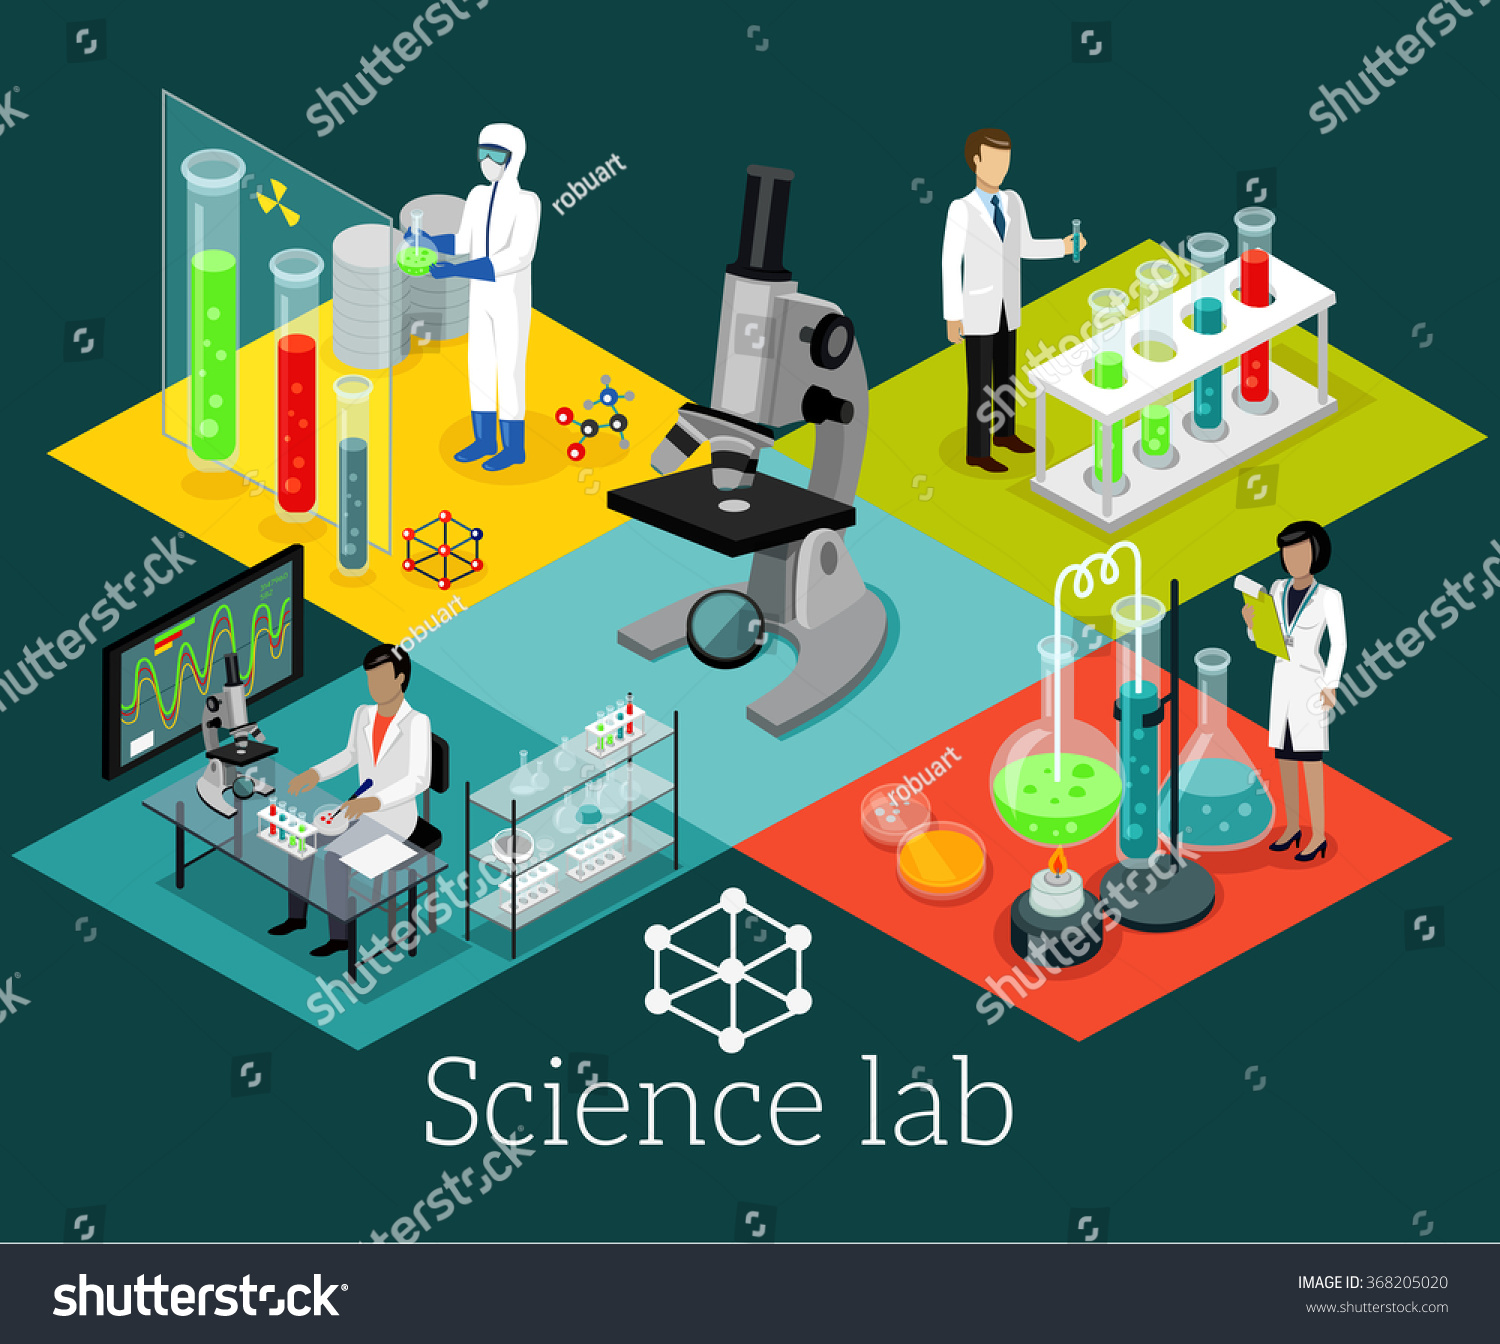 Science Lab Isometric Design Flat Science Stock Vector